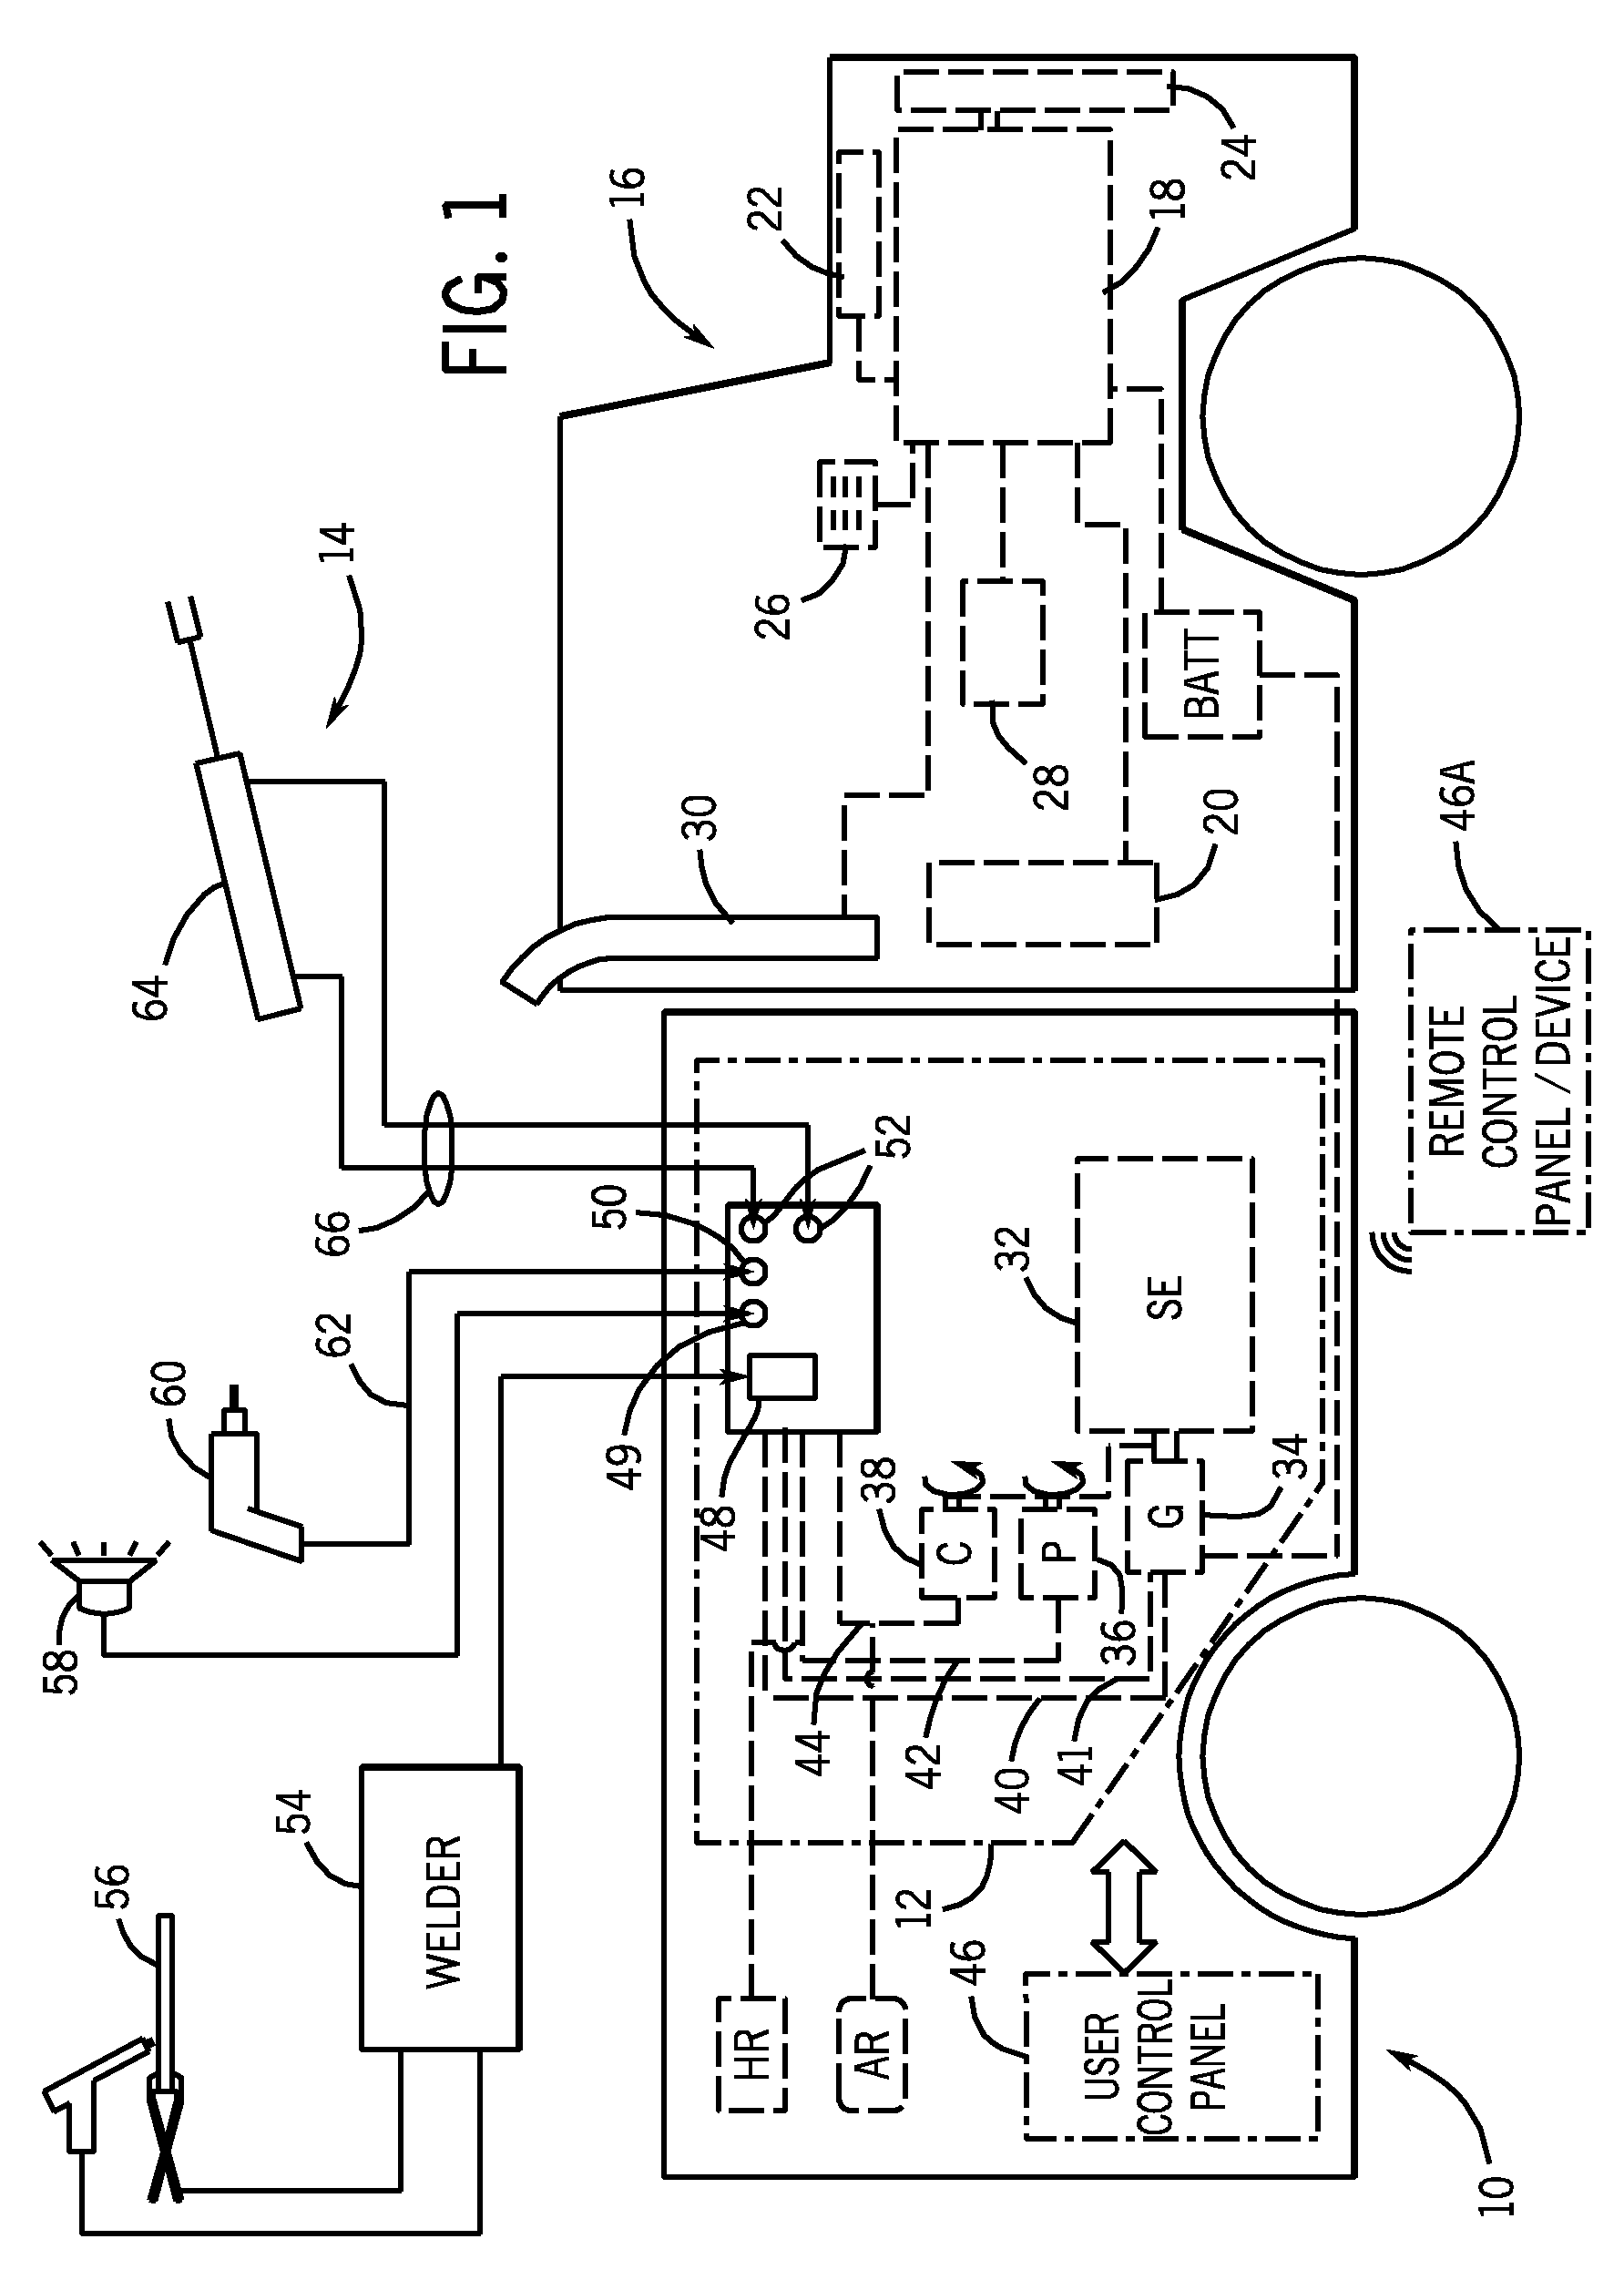 lowrider hydraulic pump wiring diagram photosynthesis stages patent us7870915 auxiliary service pack for a work